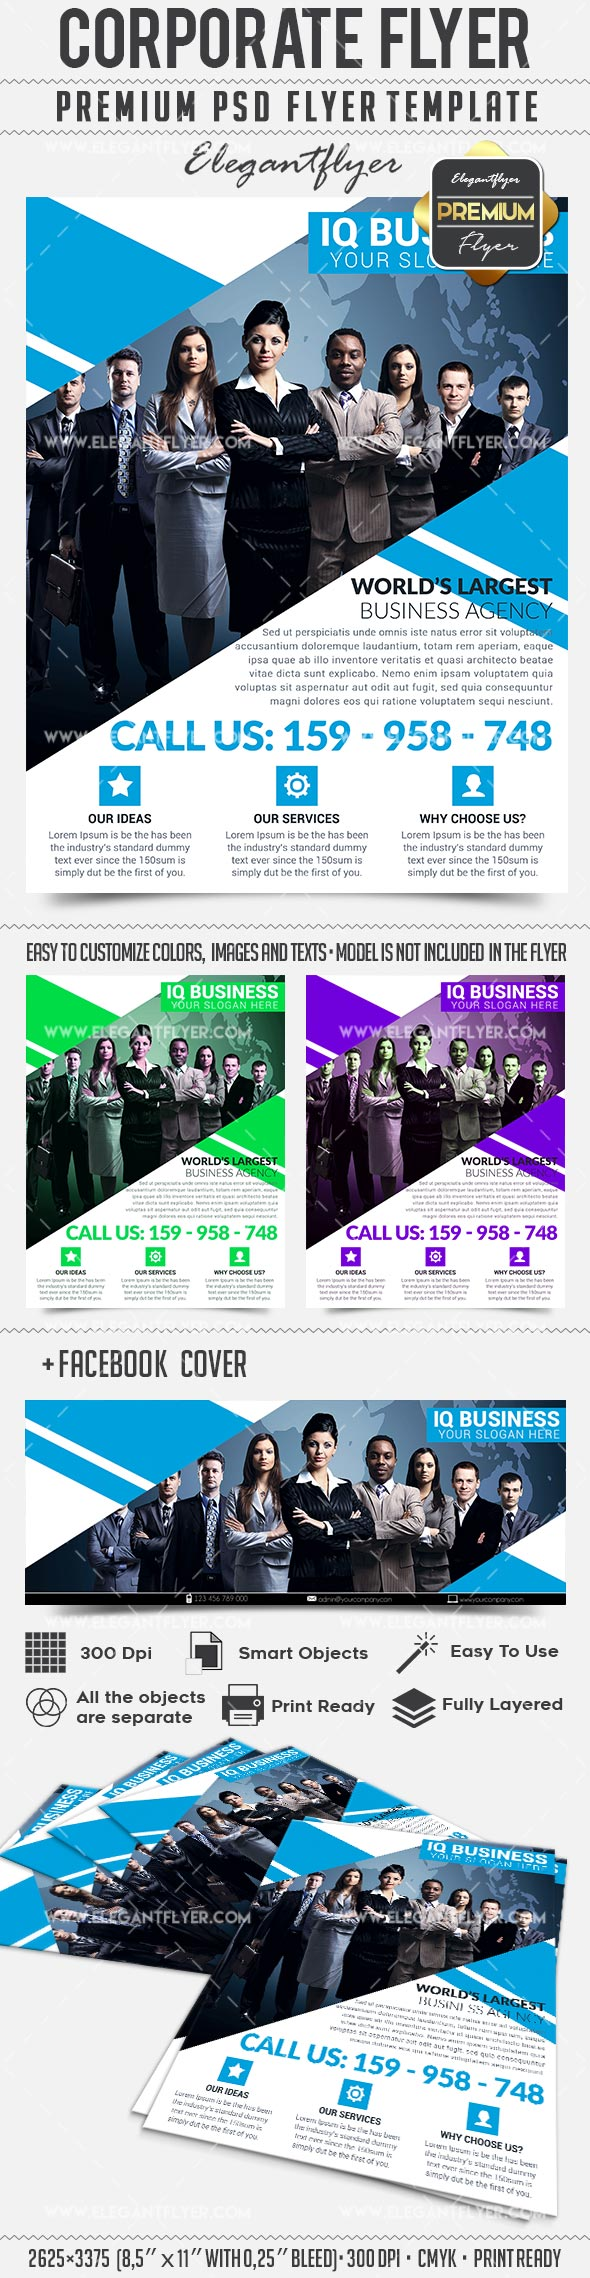 Corporate flyer business flyer psd template facebook cover corporate flyer business flyer psd template facebook cover pronofoot35fo Image collections